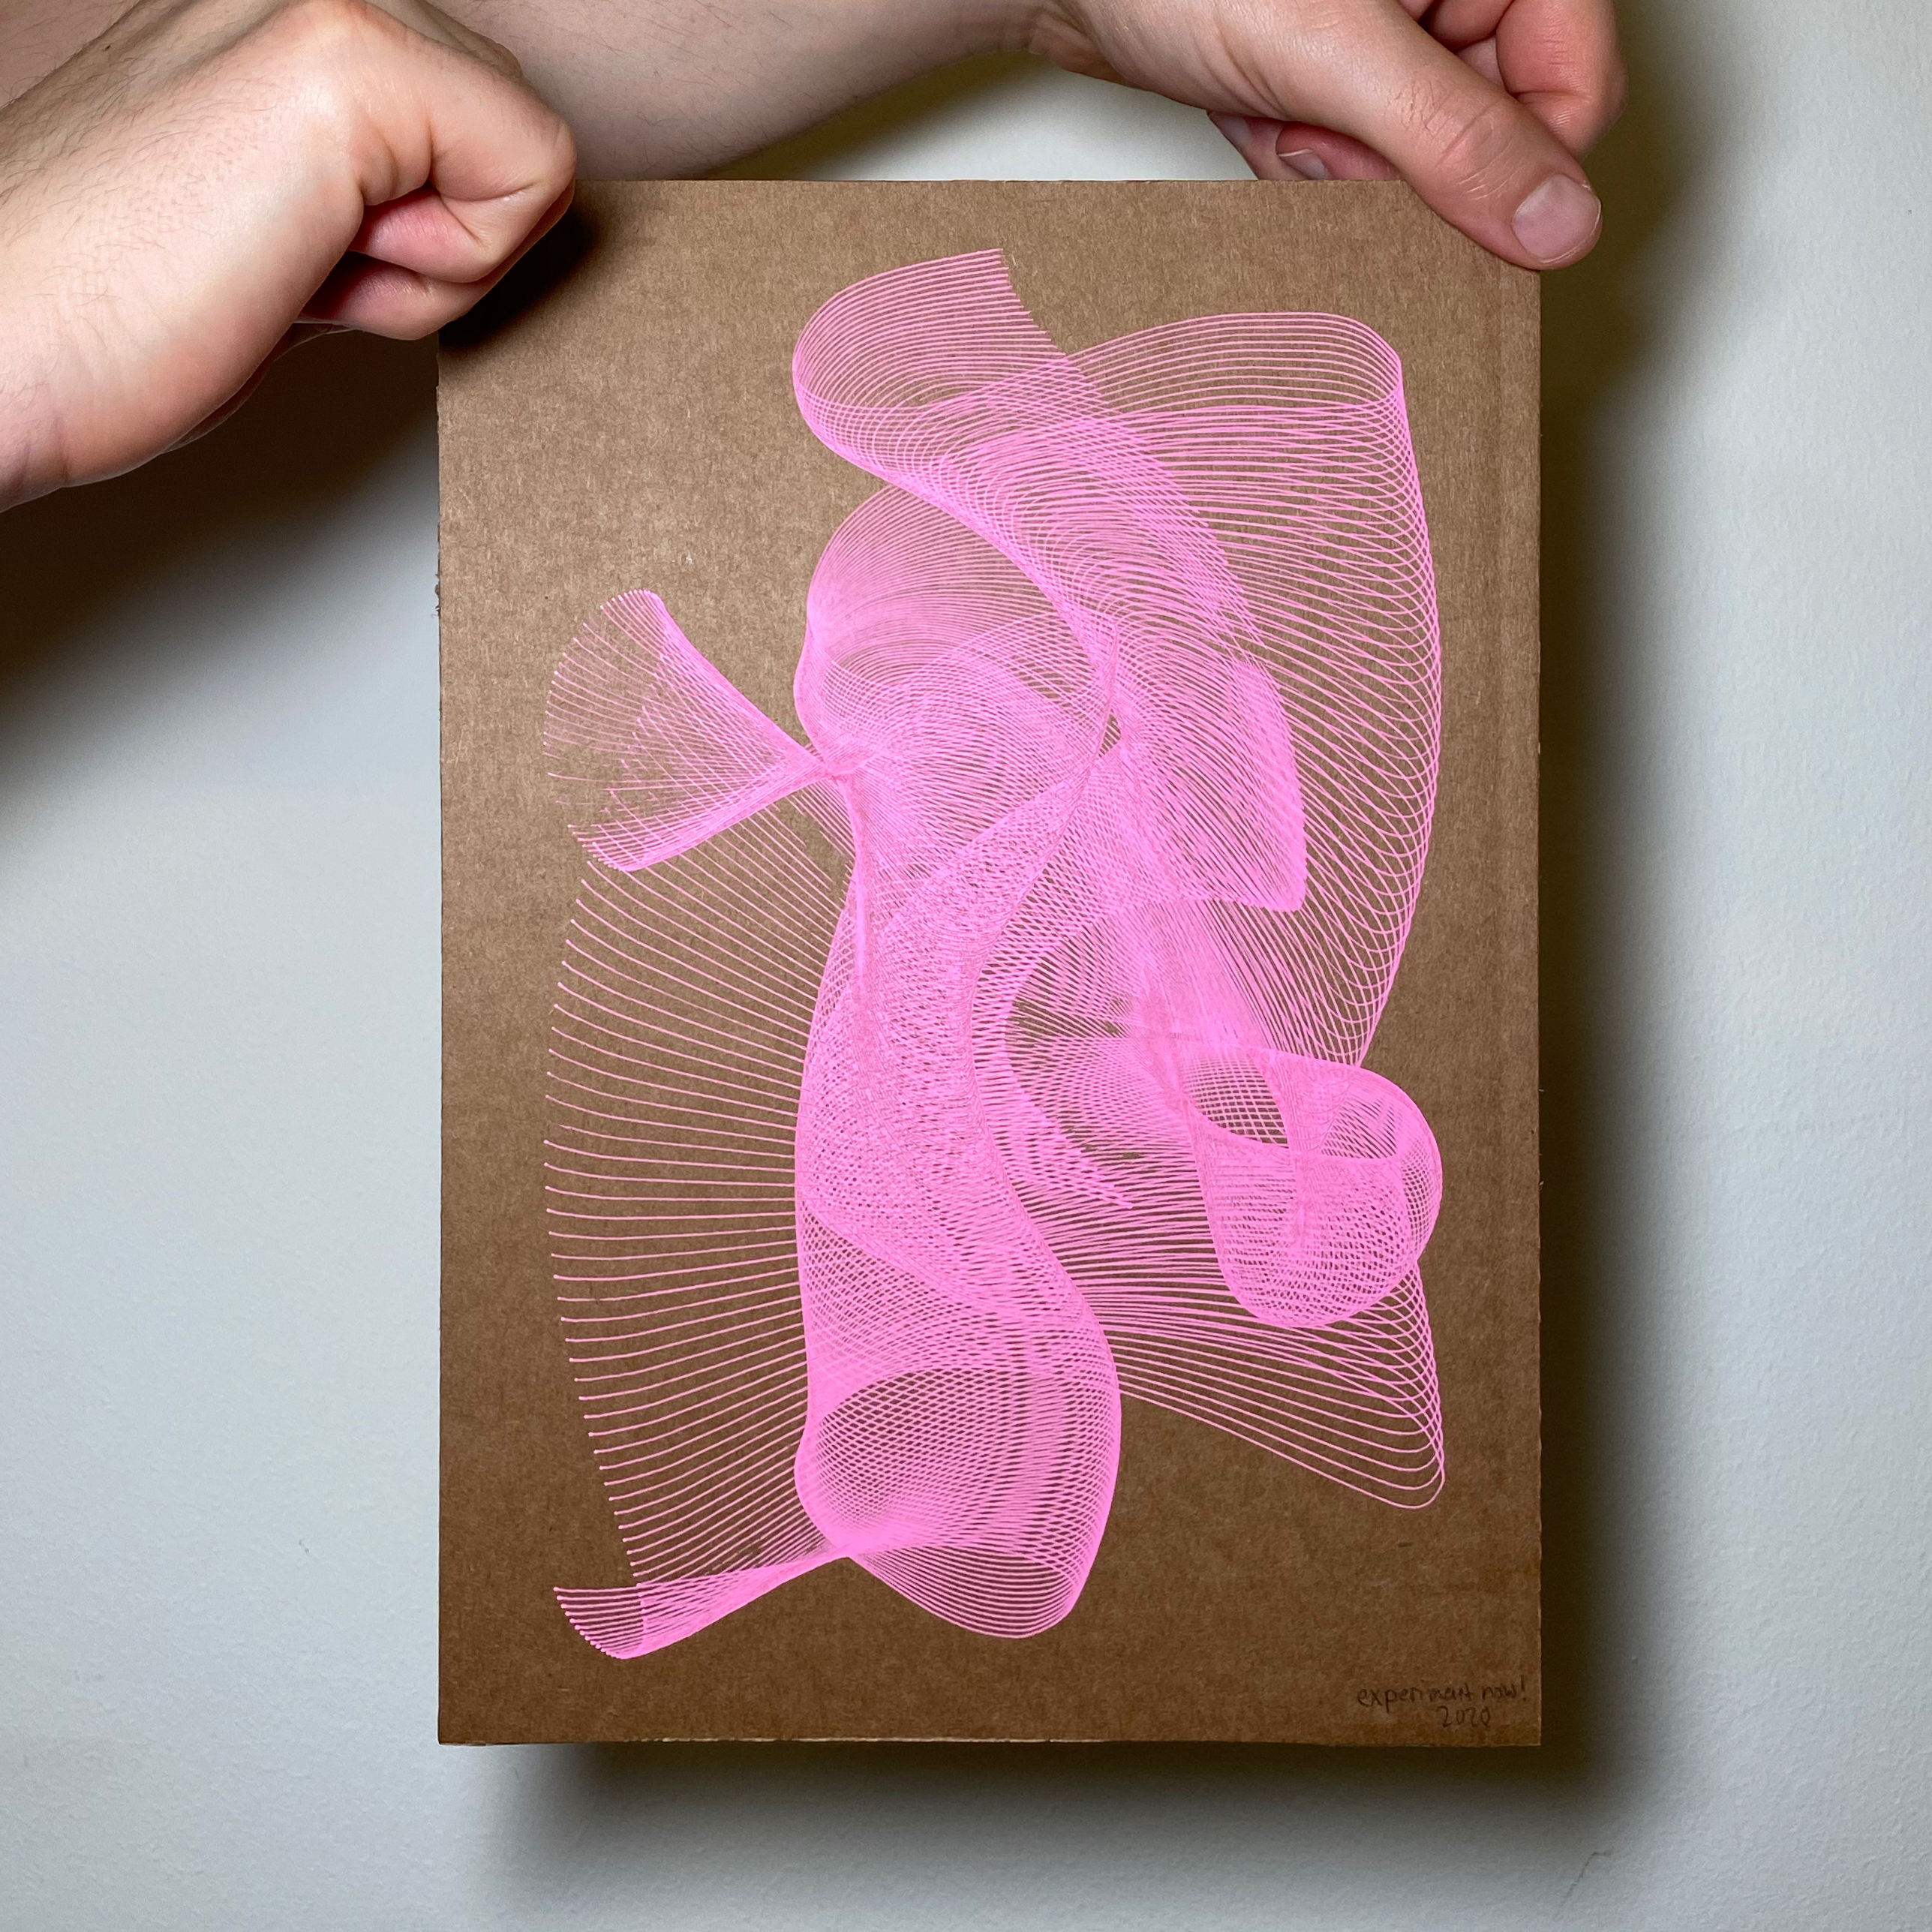 Two hands are holding a used cardboard in the size of A4 with neon pink abstract lines on it.